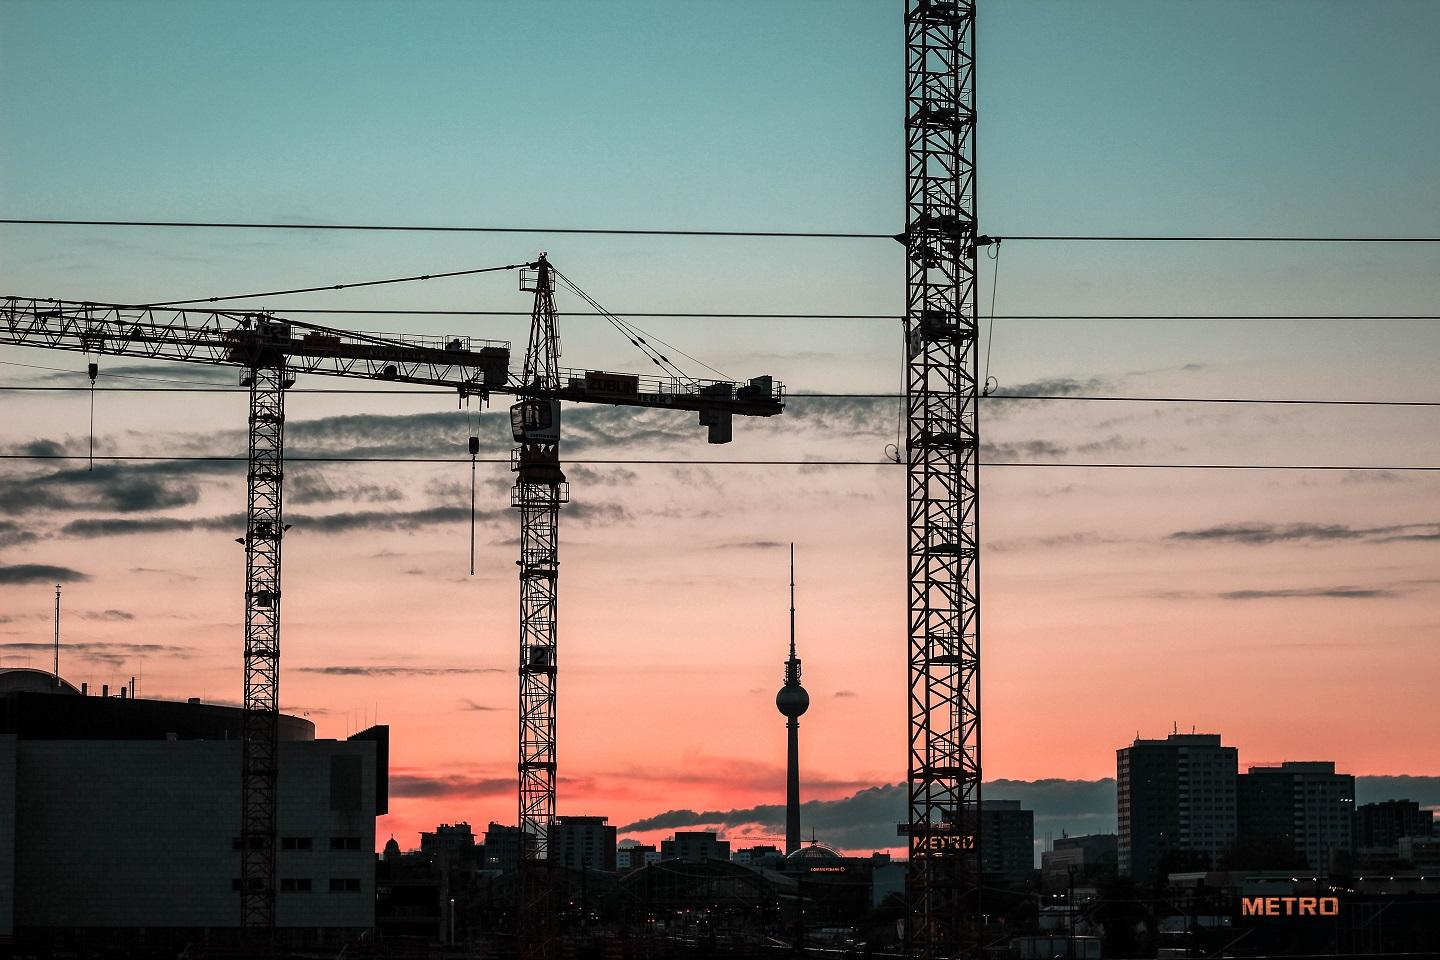 Among the common tips for buying land, buyers look into nearby projects